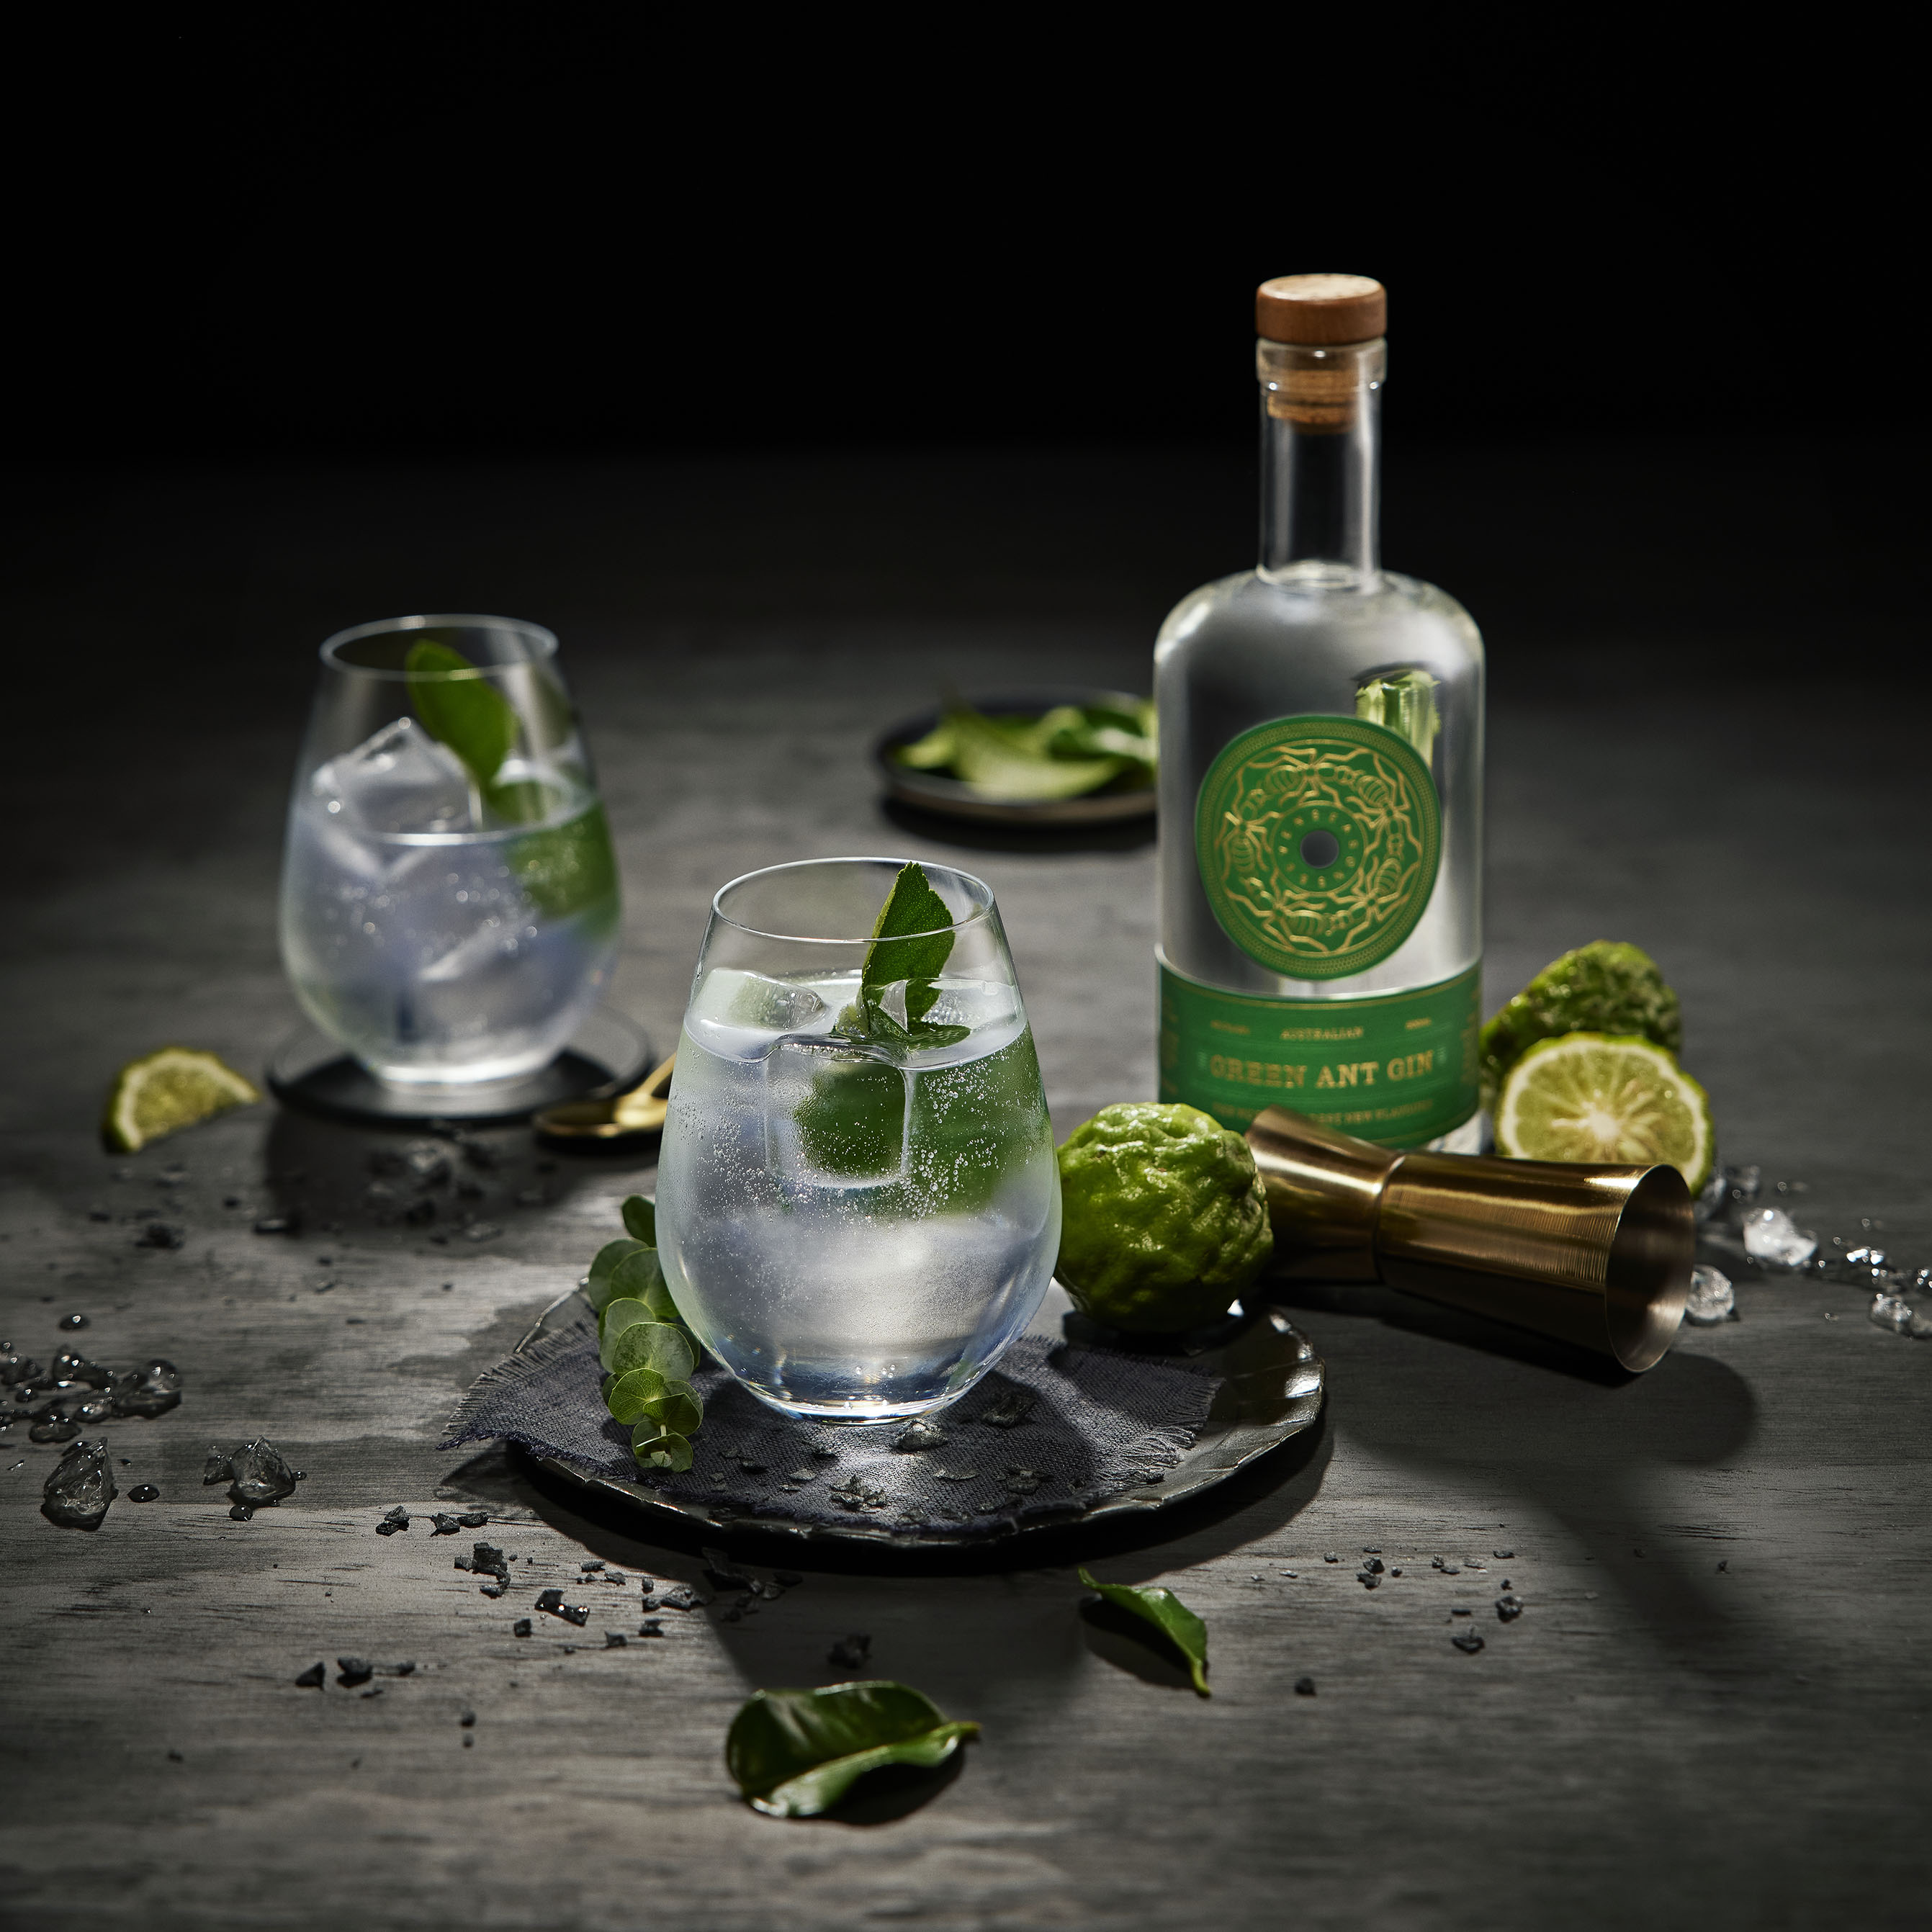 Seven Seasons invites you to experience the world's oldest new flavours, as we launch the newest member of the family joining our much lauded Green Ant Gin.